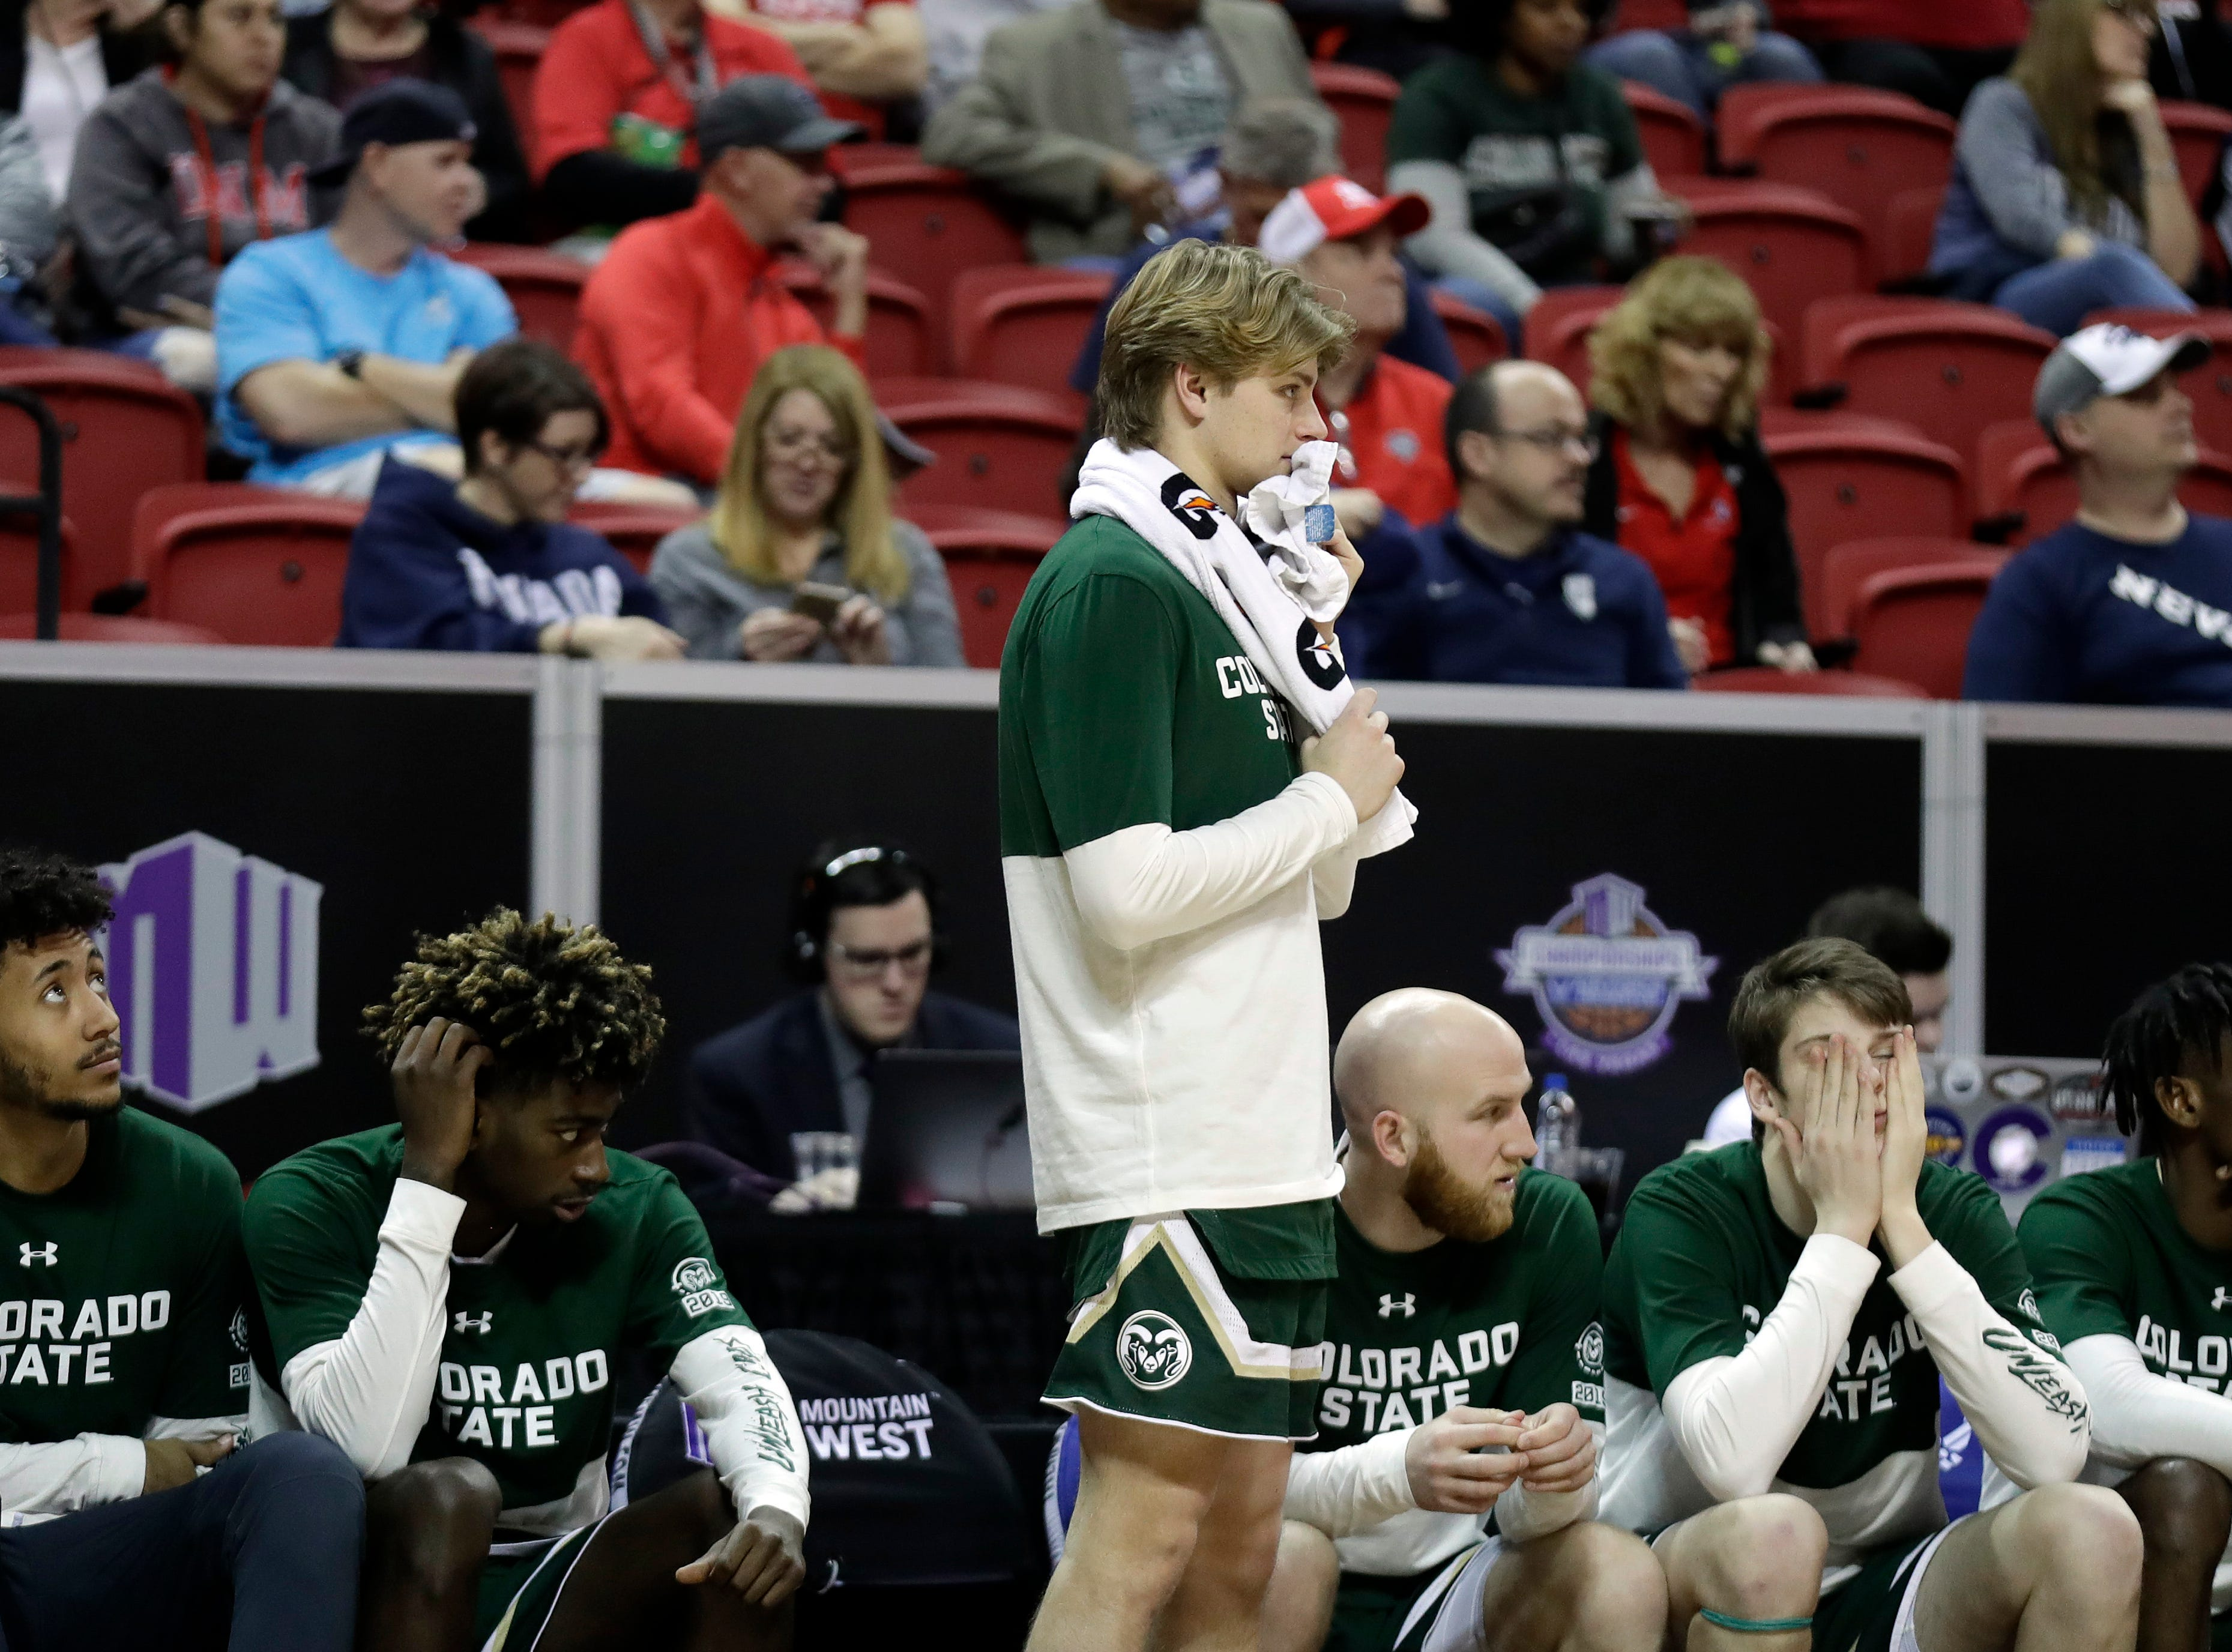 The Colorado State bench watches during the final minutes of the second half of an NCAA college basketball game in the Mountain West Conference tournament against Boise State Wednesday, March 13, 2019, in Las Vegas.